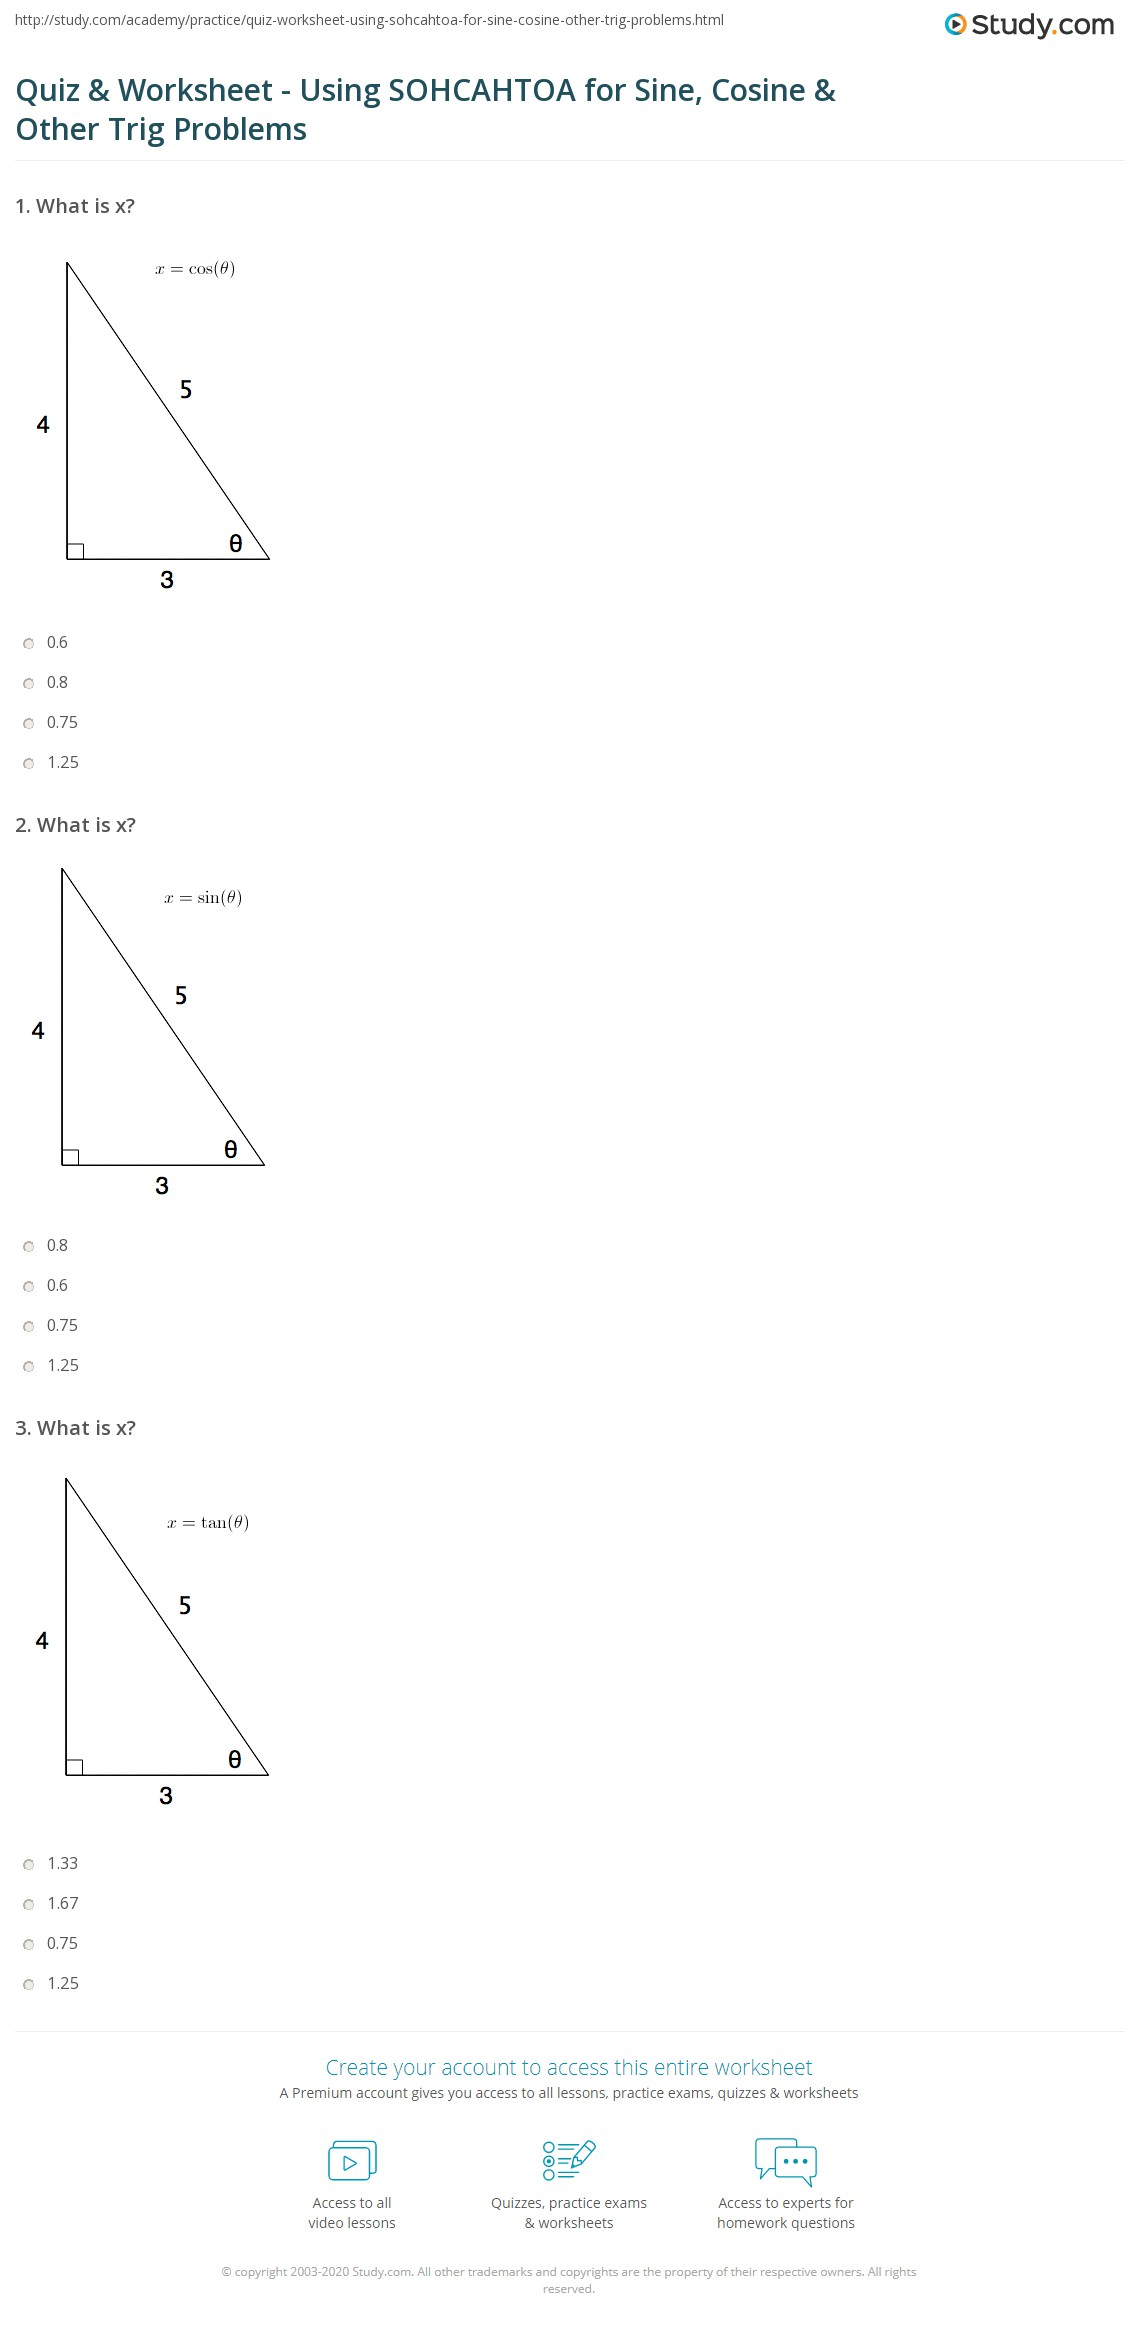 Quiz & Worksheet - Using SOHCAHTOA for Sine, Cosine & Other Trig ...